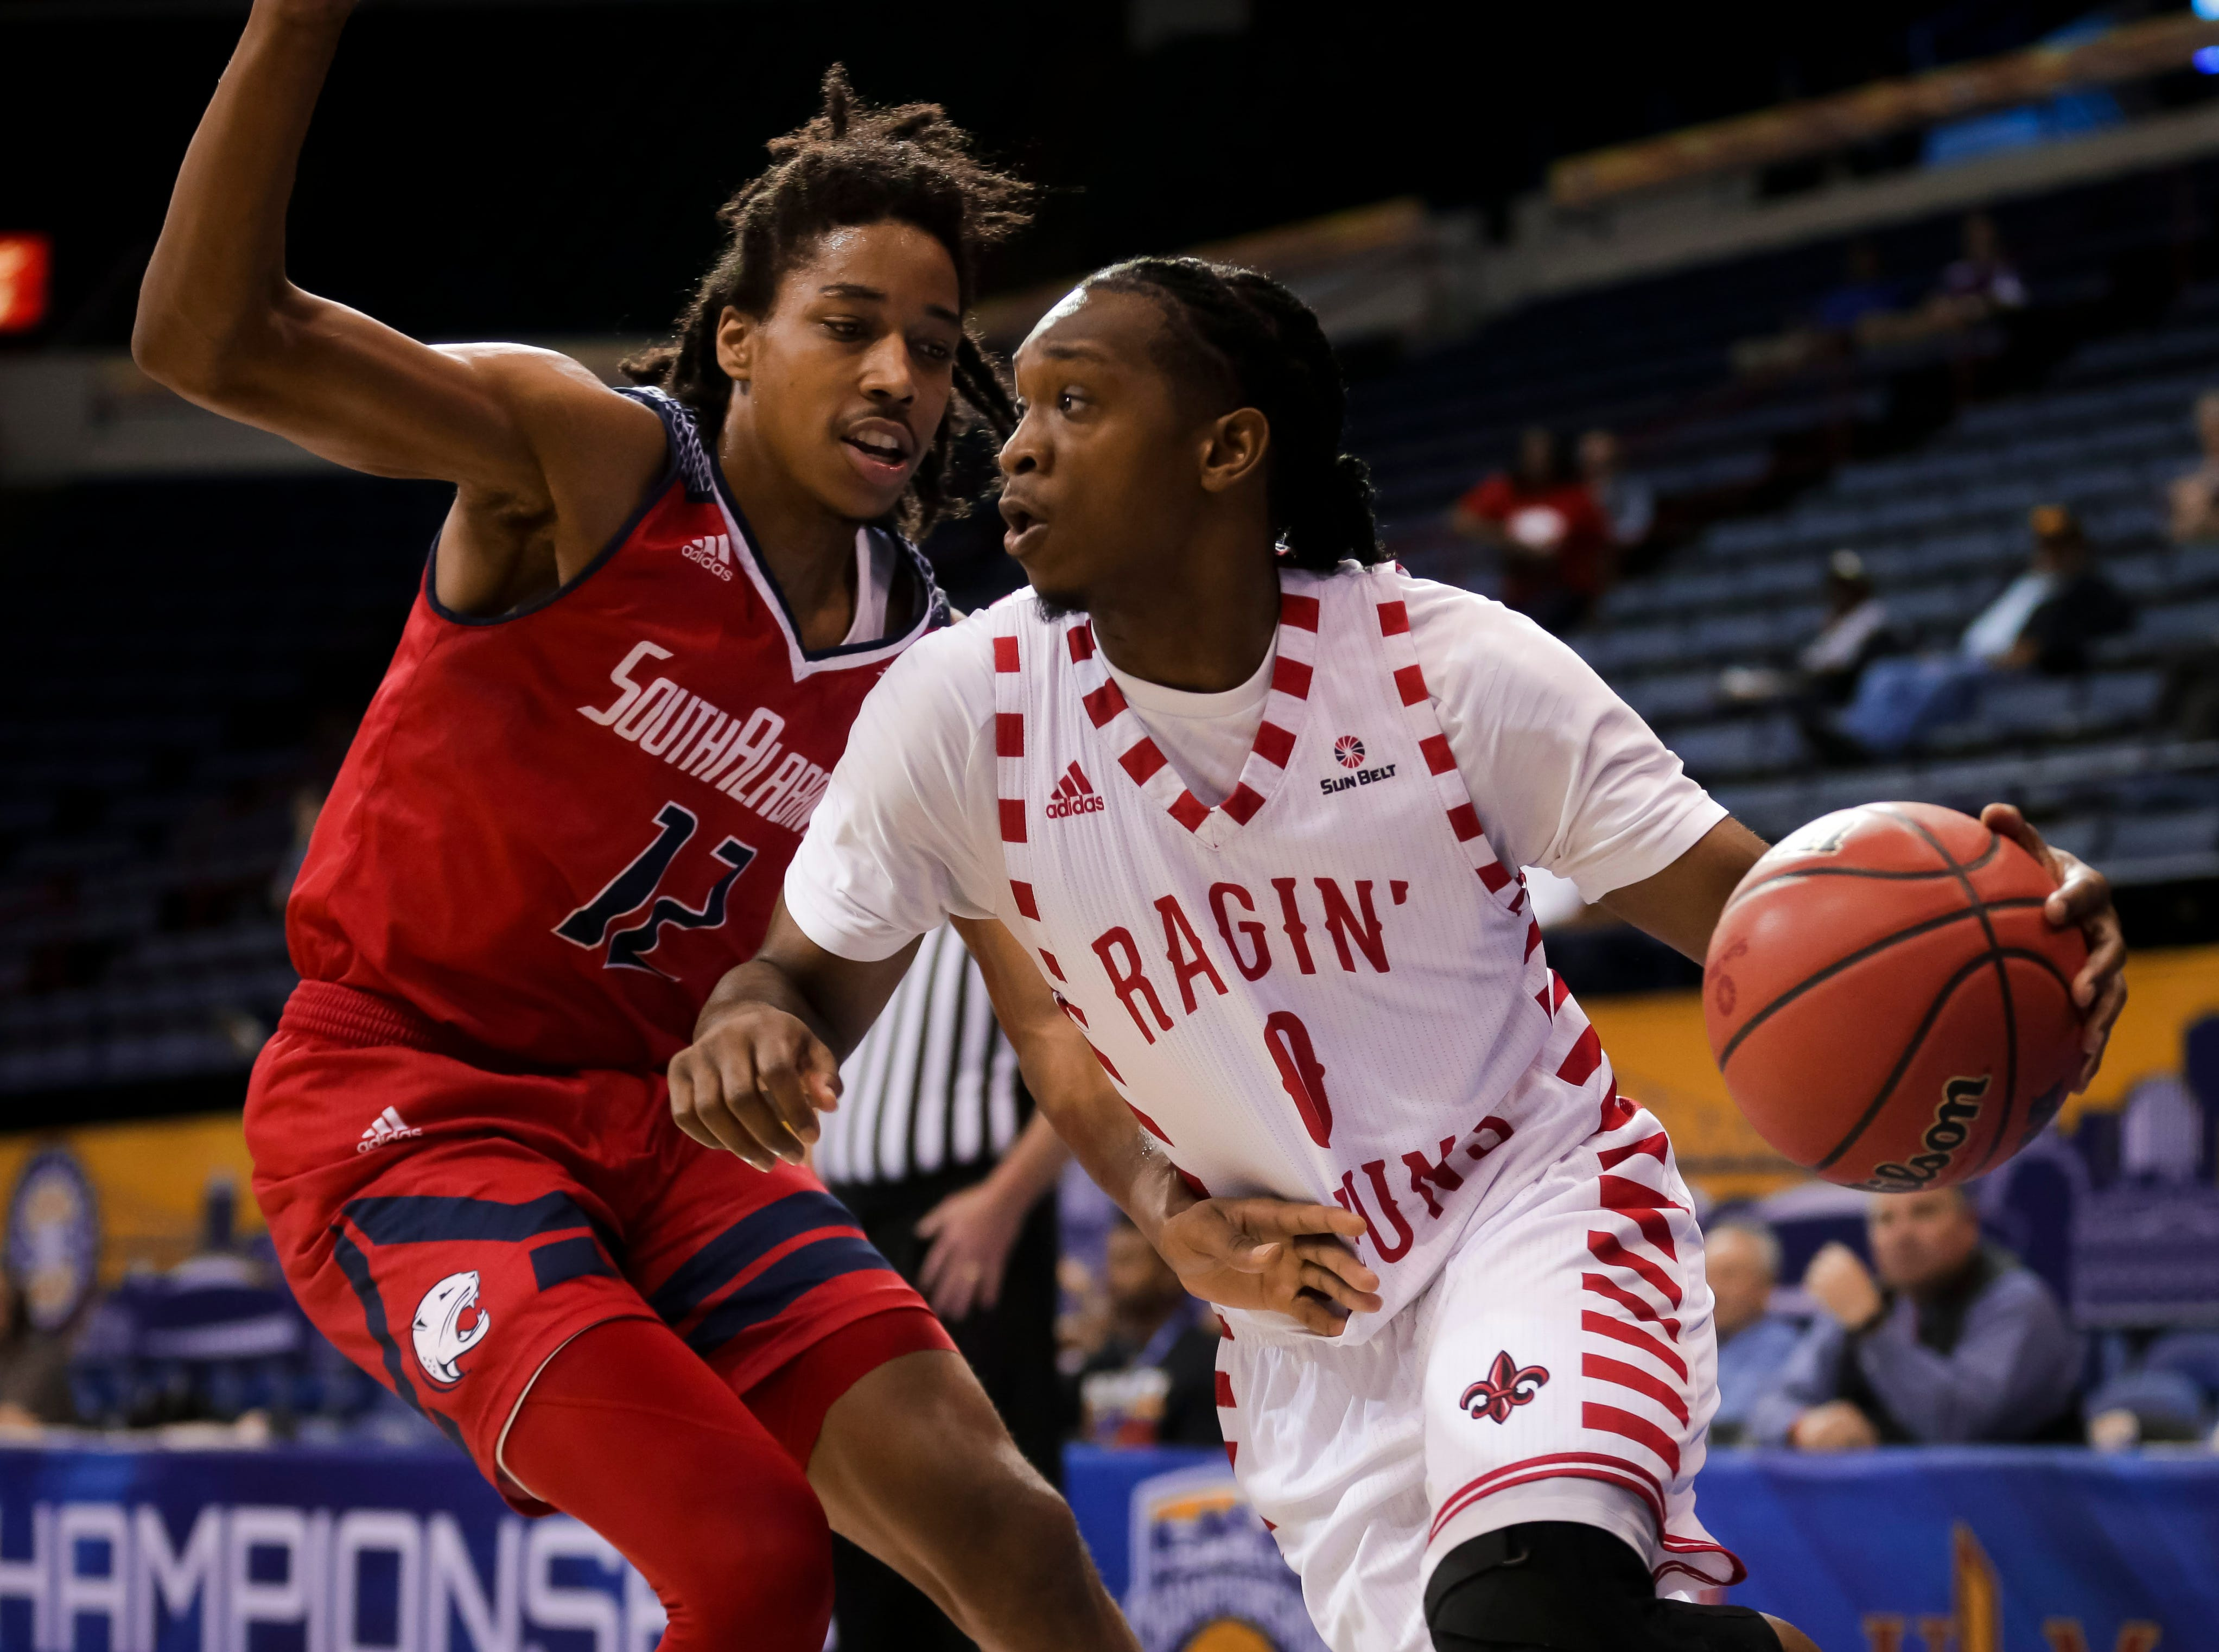 UL sophomore guard Cedric Russell drives against South Alabama on Thursday at the Sun Belt Men's Basketball Championship in New Orleans.